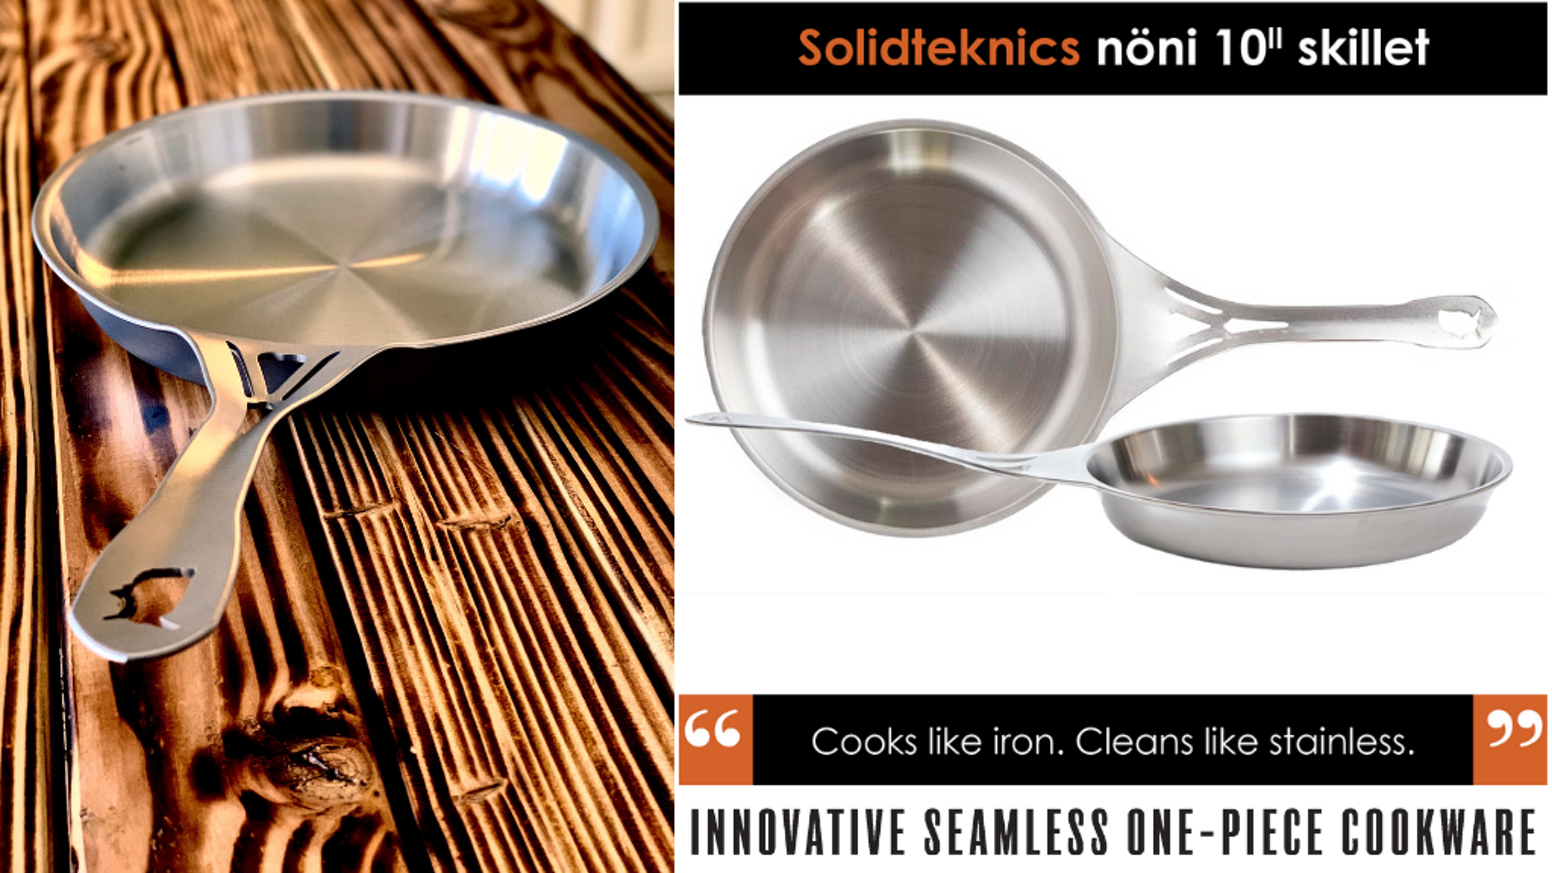 World First - Crafted in Chicago - 100% USA non-Nickel stainless steel. Solid and MORE conductive than clad. Patented. Indestructible.